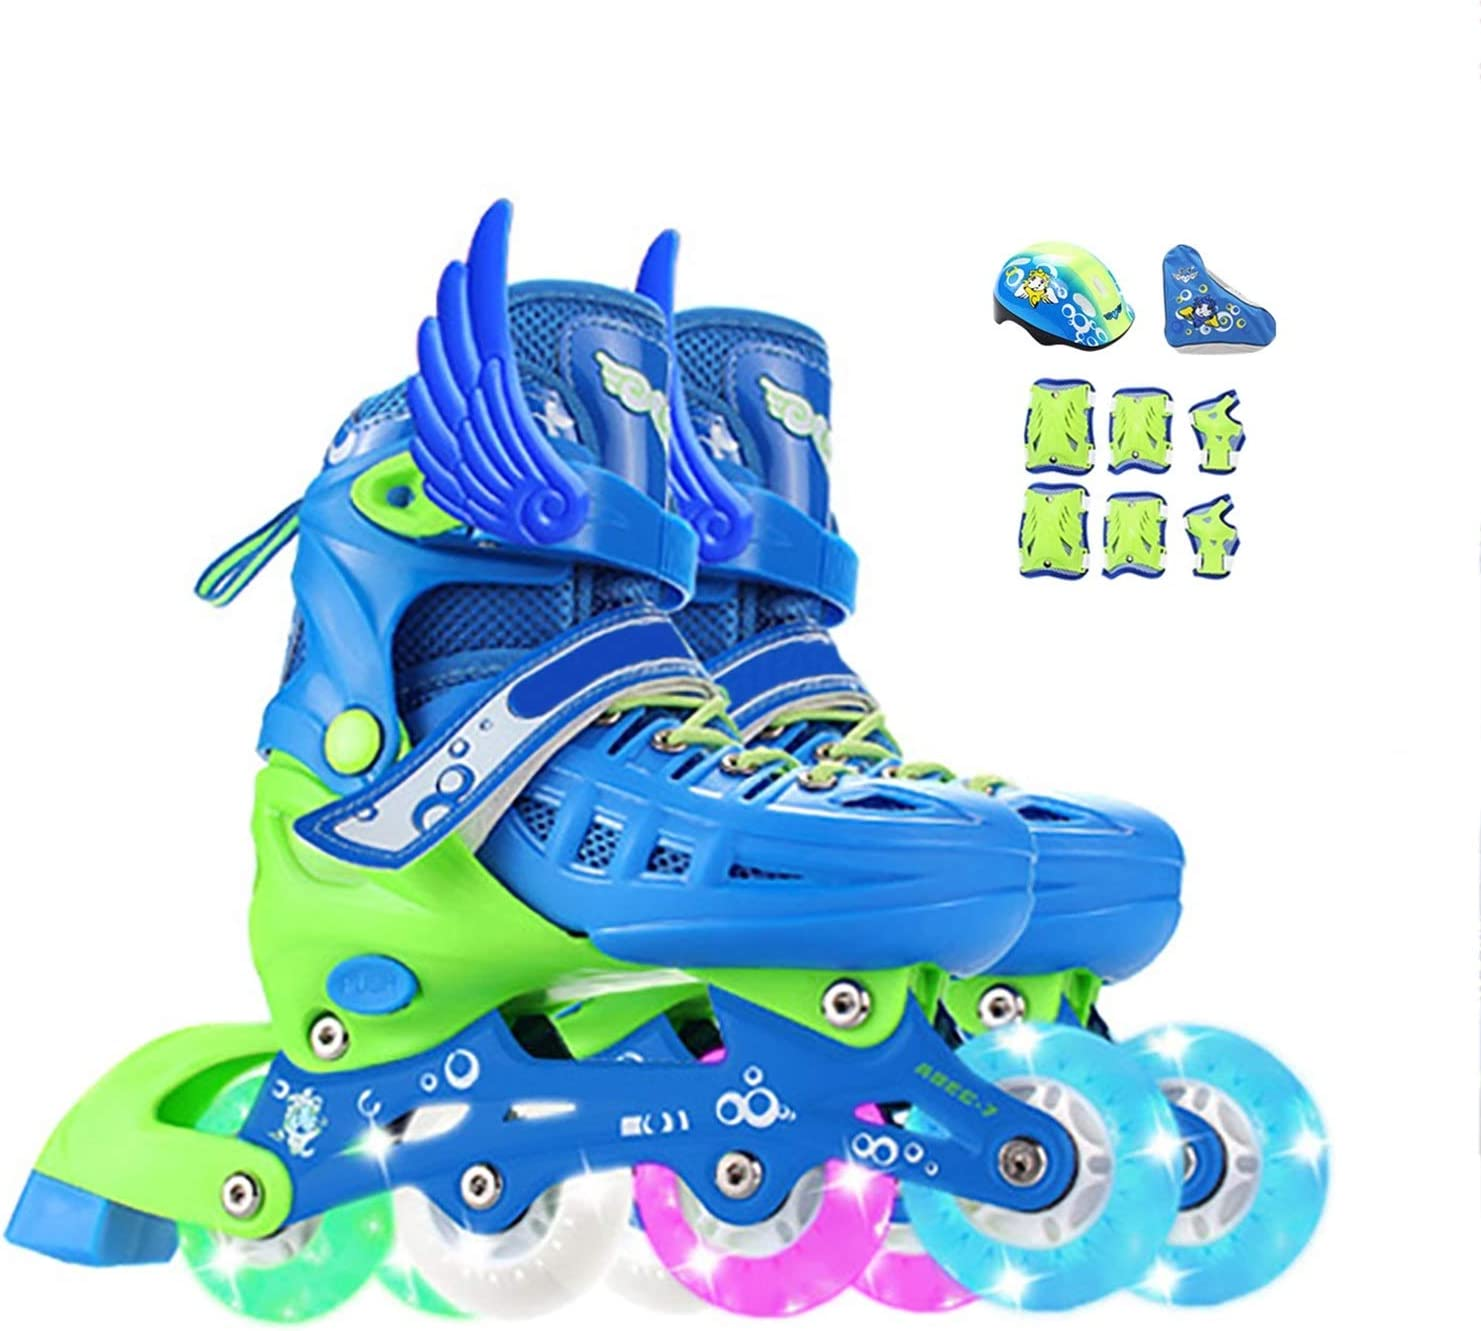 Max 70% OFF mfw@wewe Adjustable Inline Skates for with Wheels Kids Light SEAL limited product Up